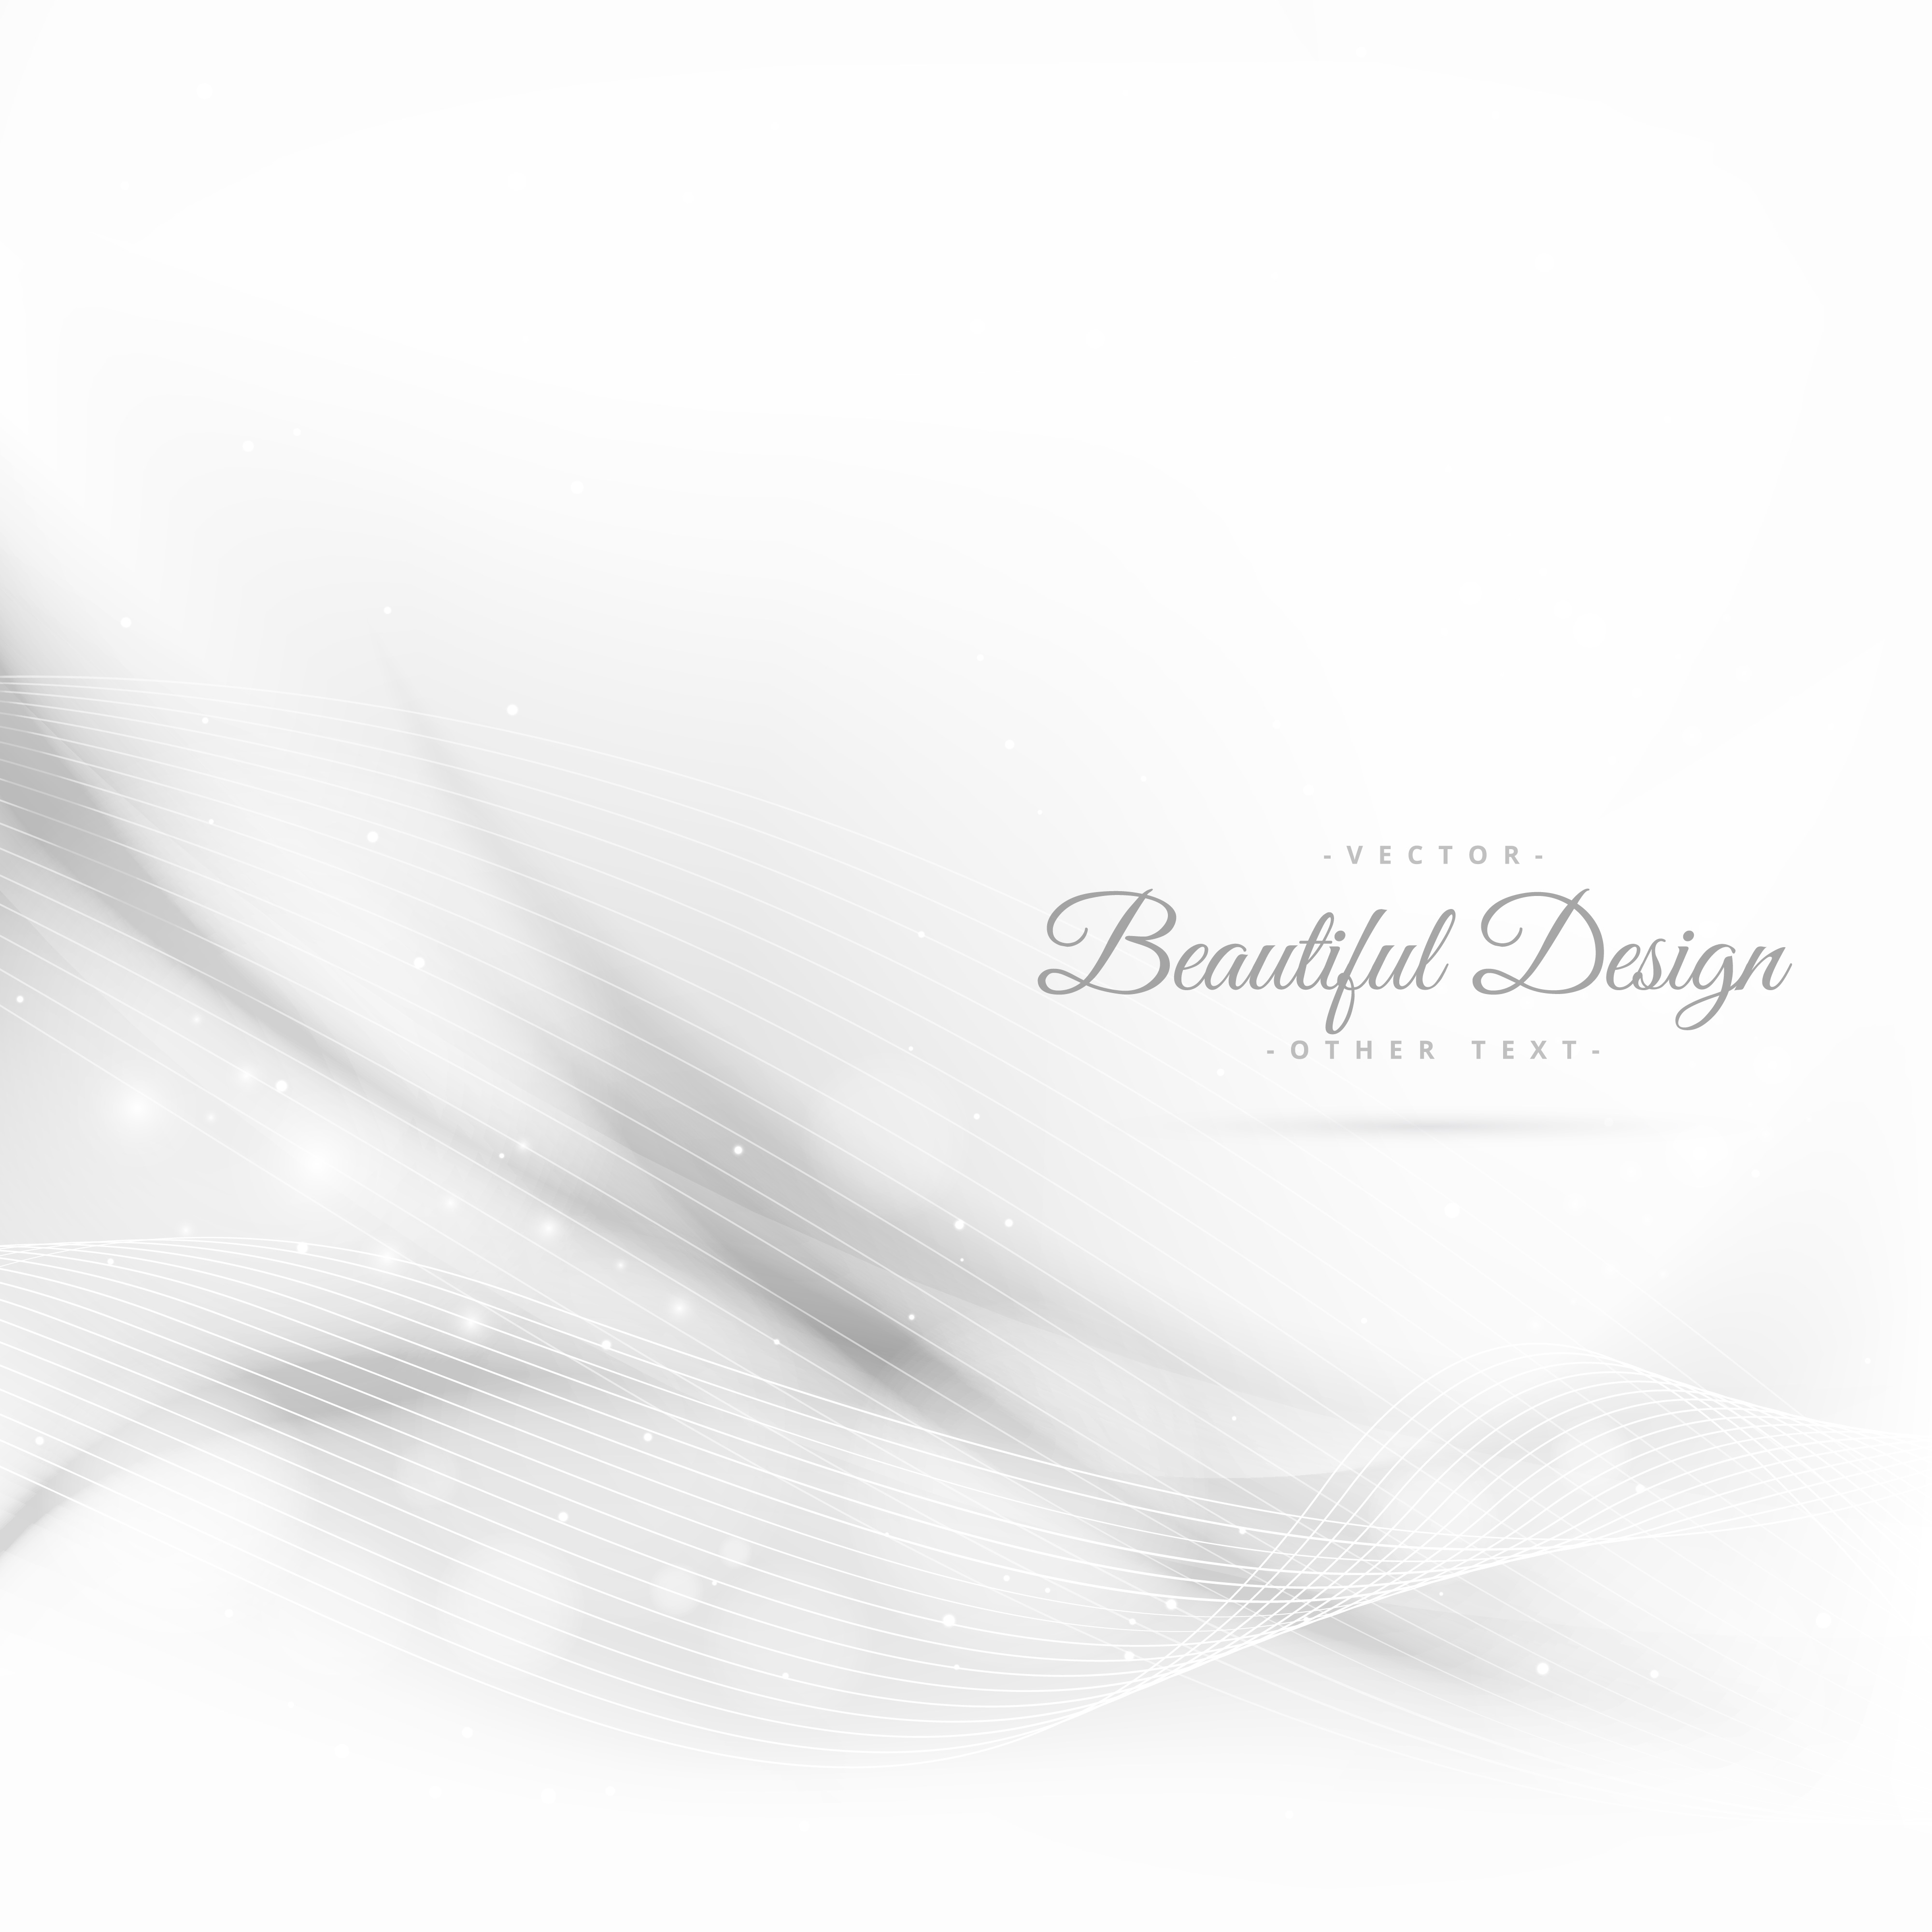 Abstract White Wave Style Background